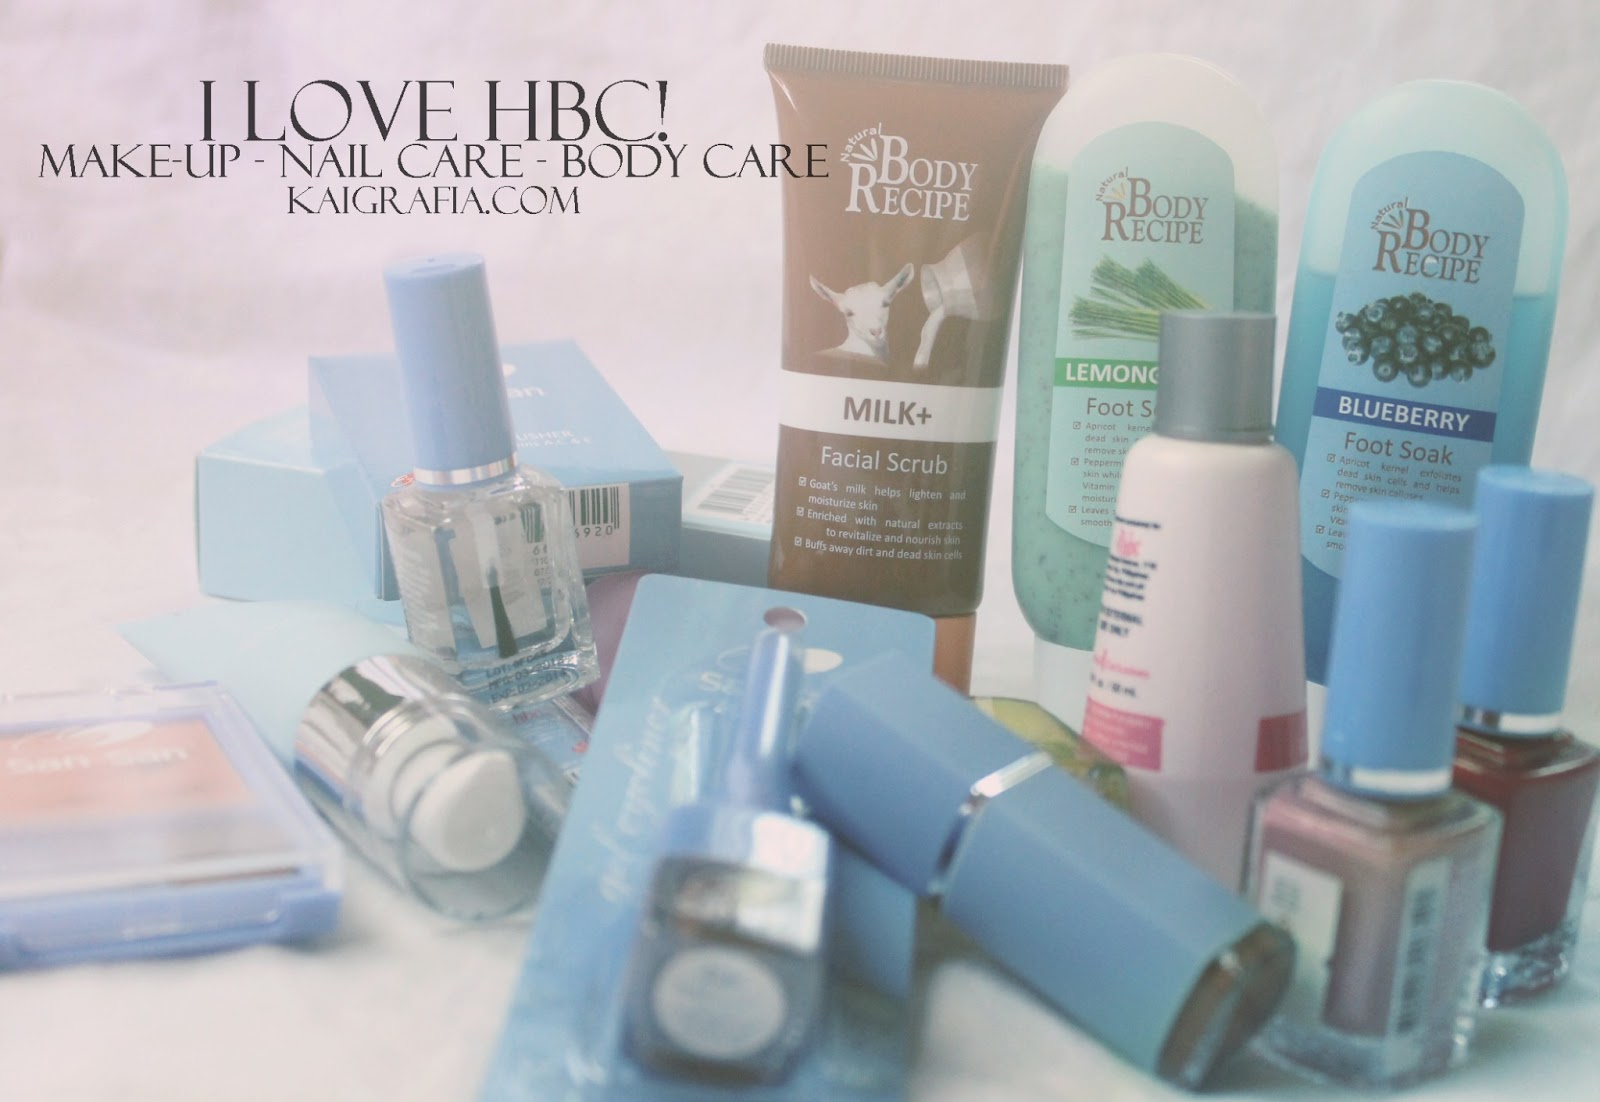 affordable make-up hbc philippines